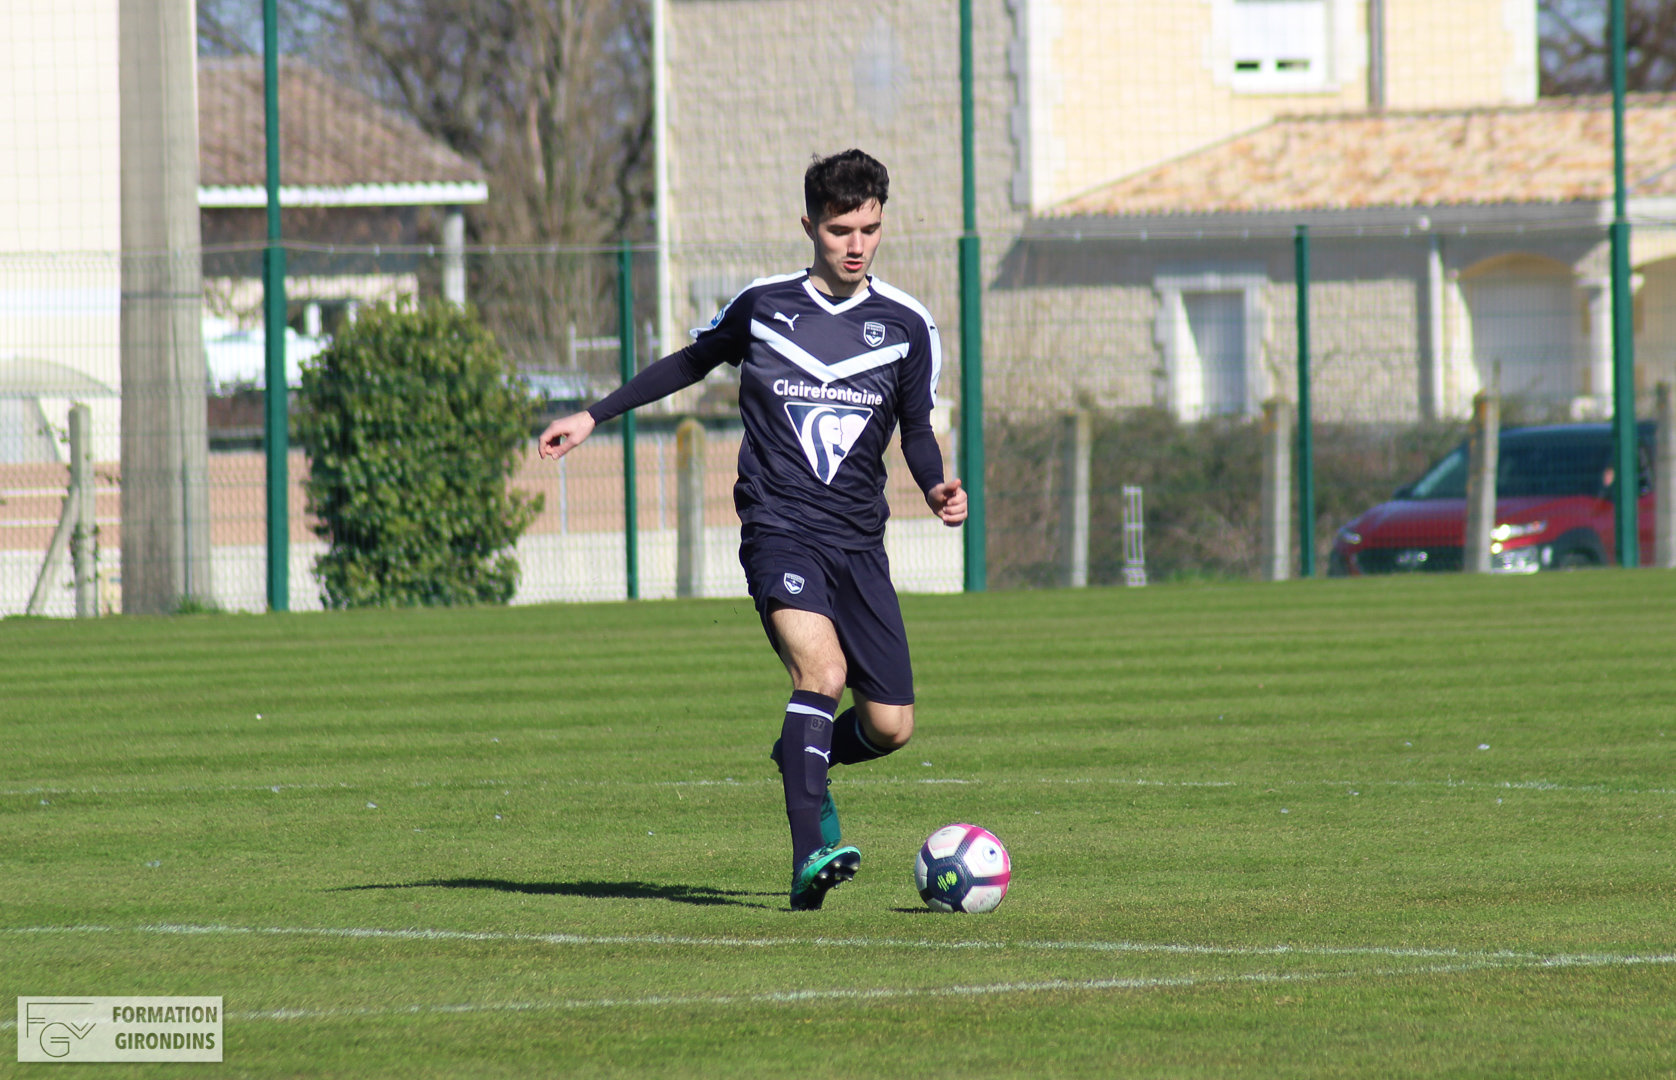 Cfa Girondins : Théo Minard annonce son départ - Formation Girondins